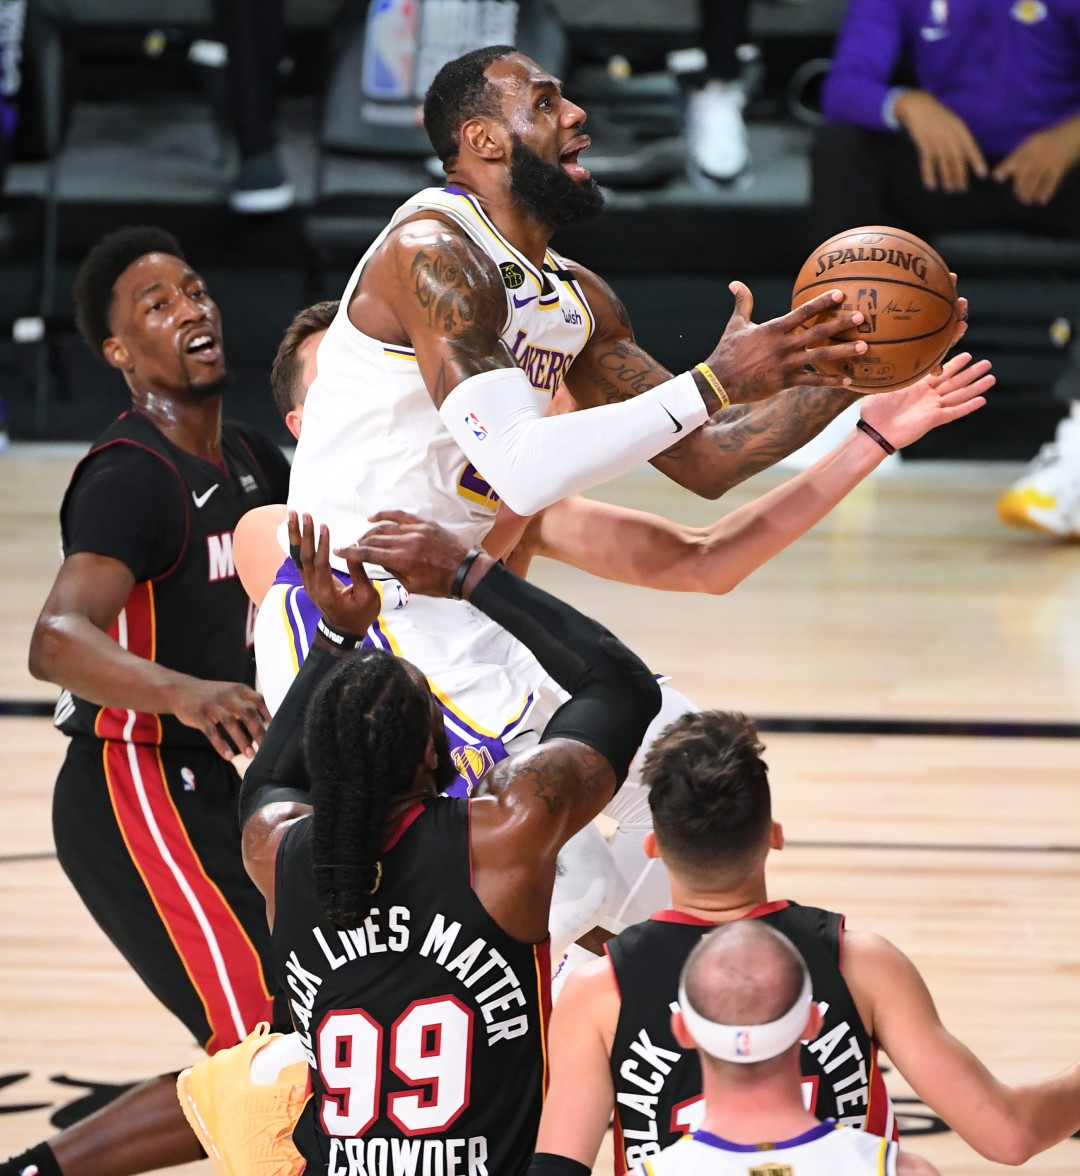 Lakers forward LeBron James puts up a shot over the Miami Heat during the first quarter in Game 6 of the NBA Finals on Sunday.(Wally Skalij / Los Angeles Times)